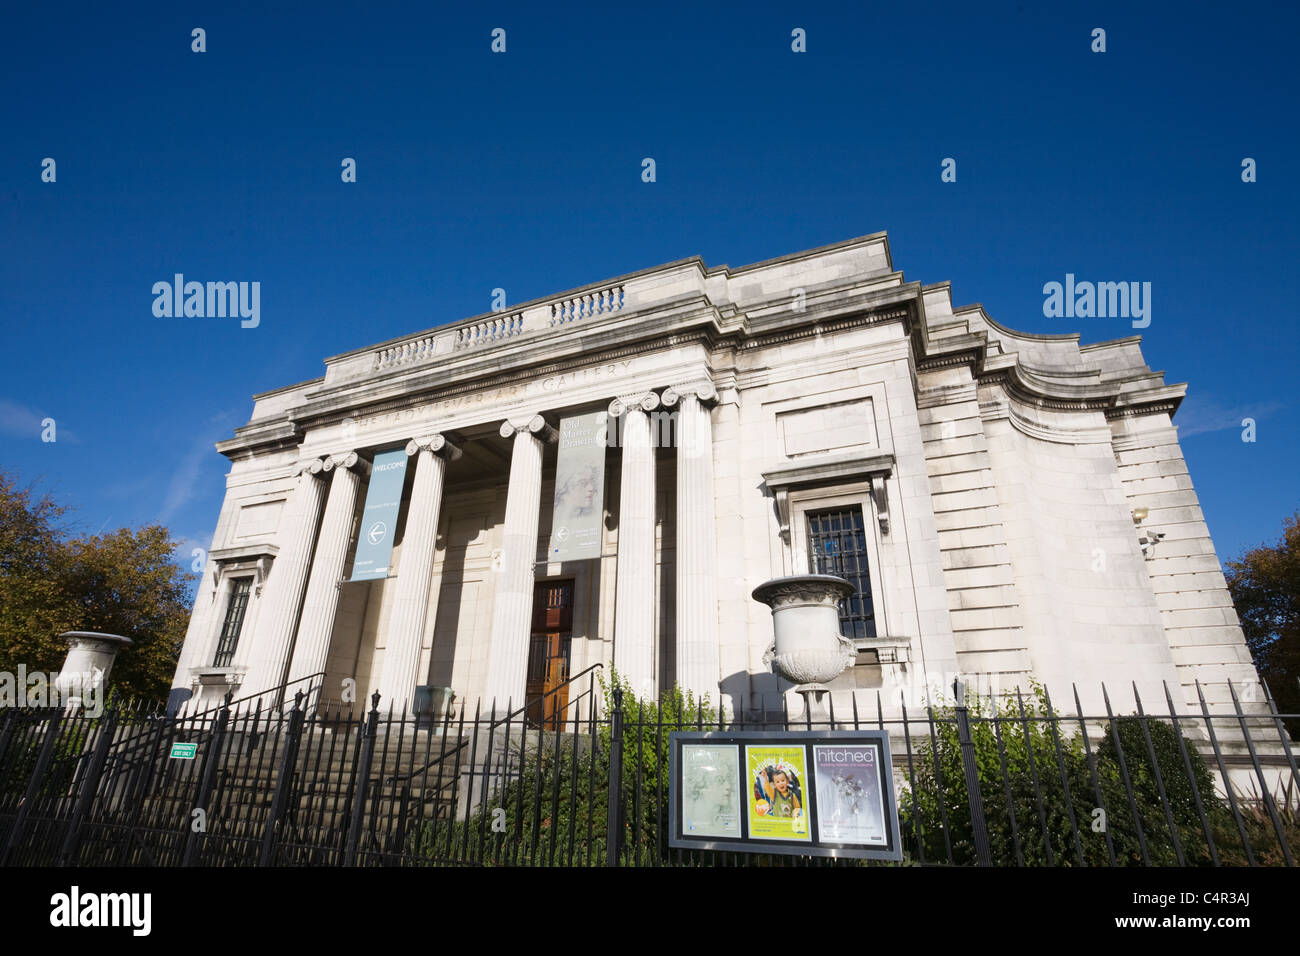 Lady Lever Art Gallery, Port Sunlight Village, Wirral, Cheshire, England - Stock Image